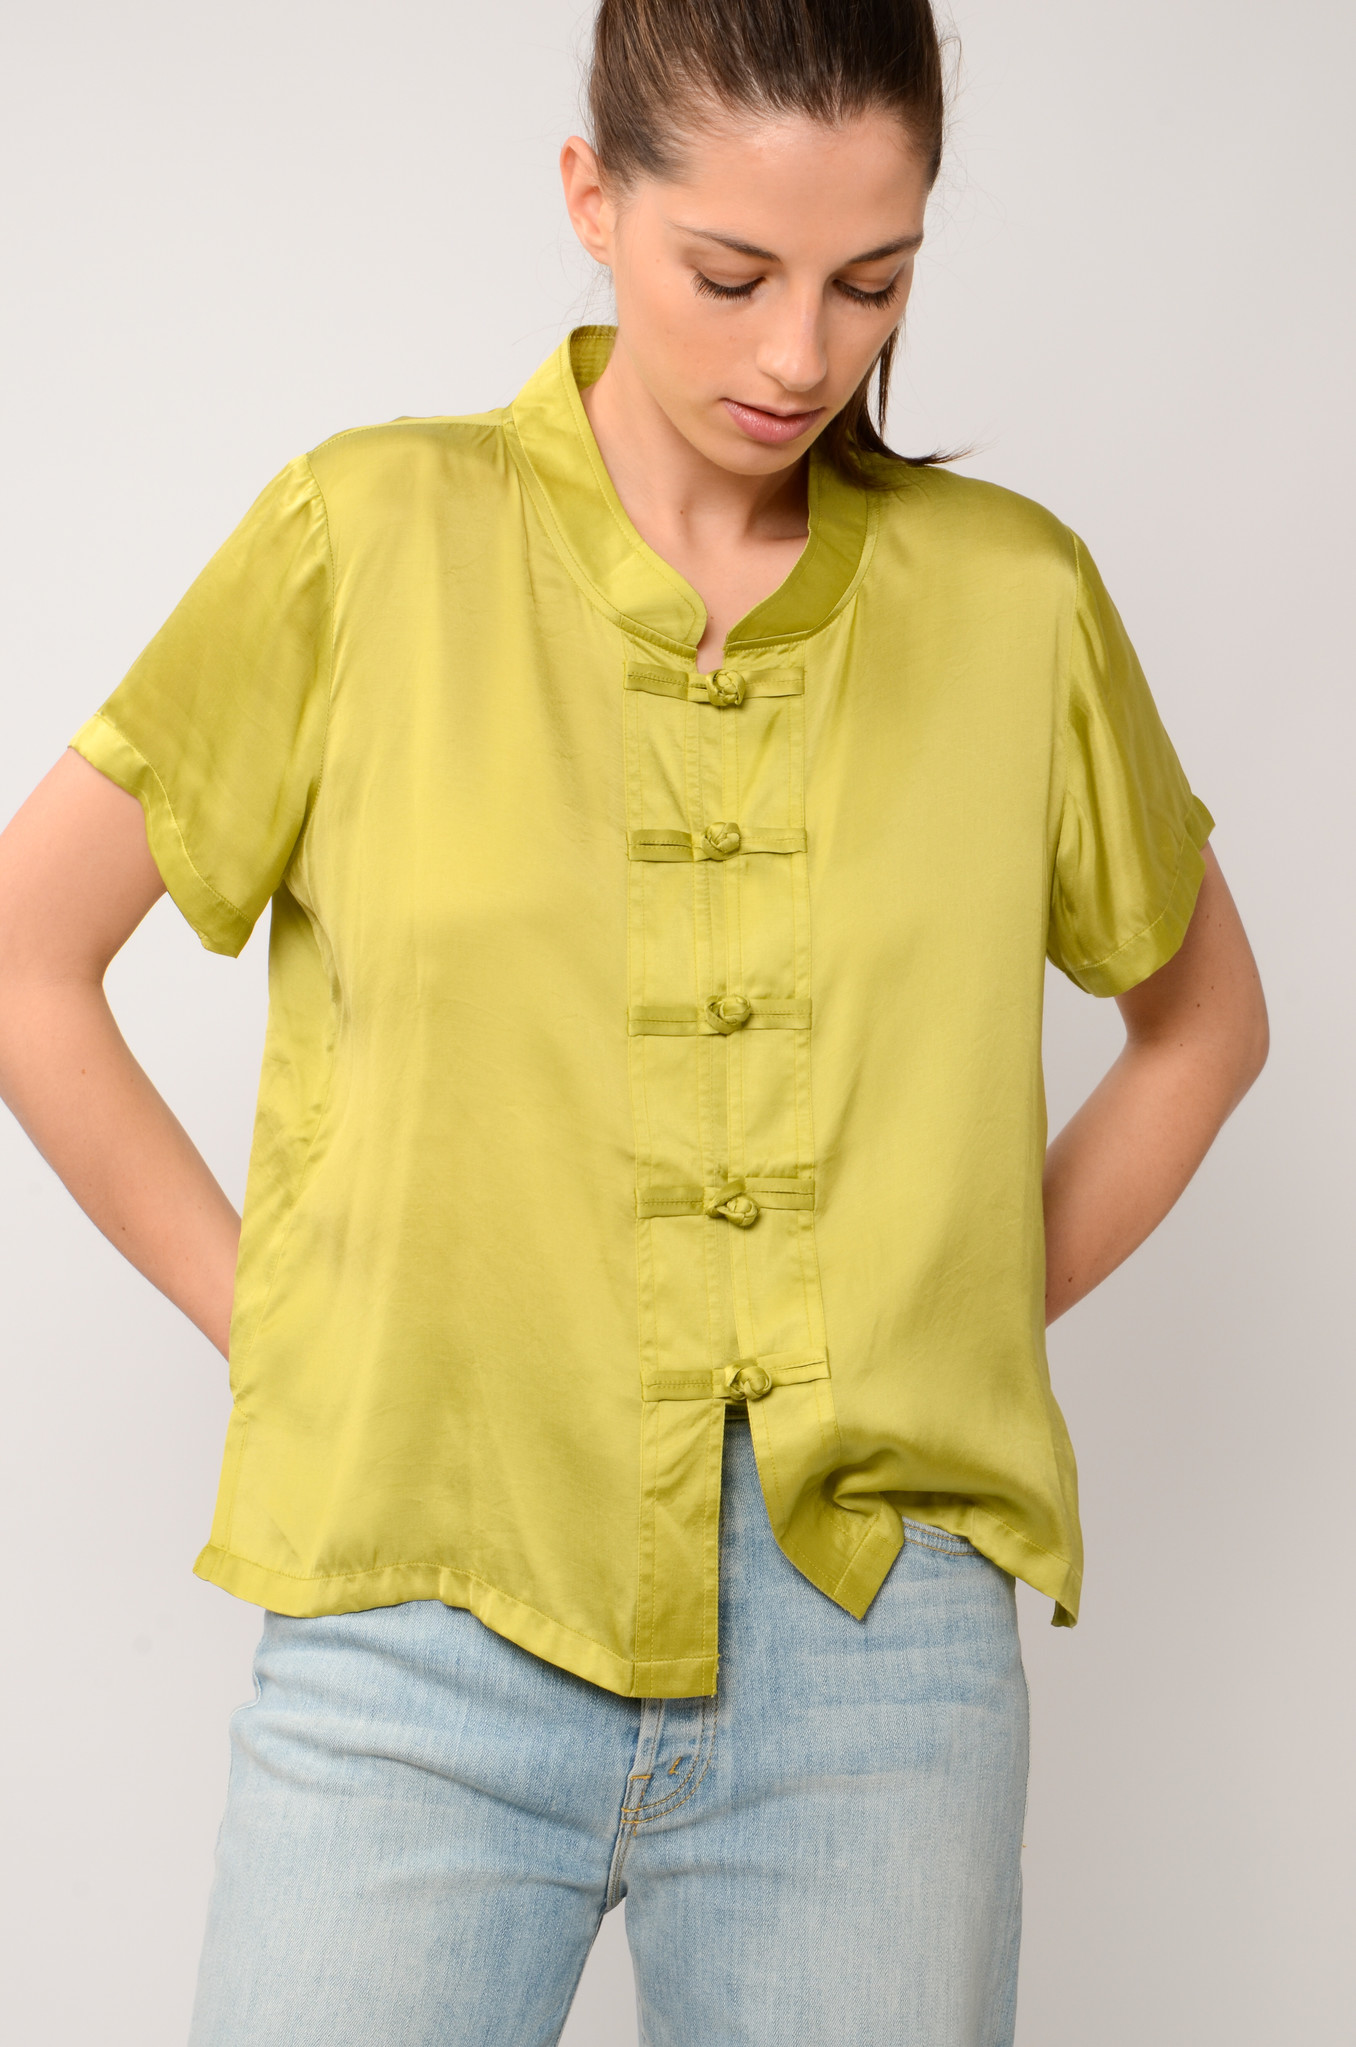 LOTUS TOP IN OLIVE-6